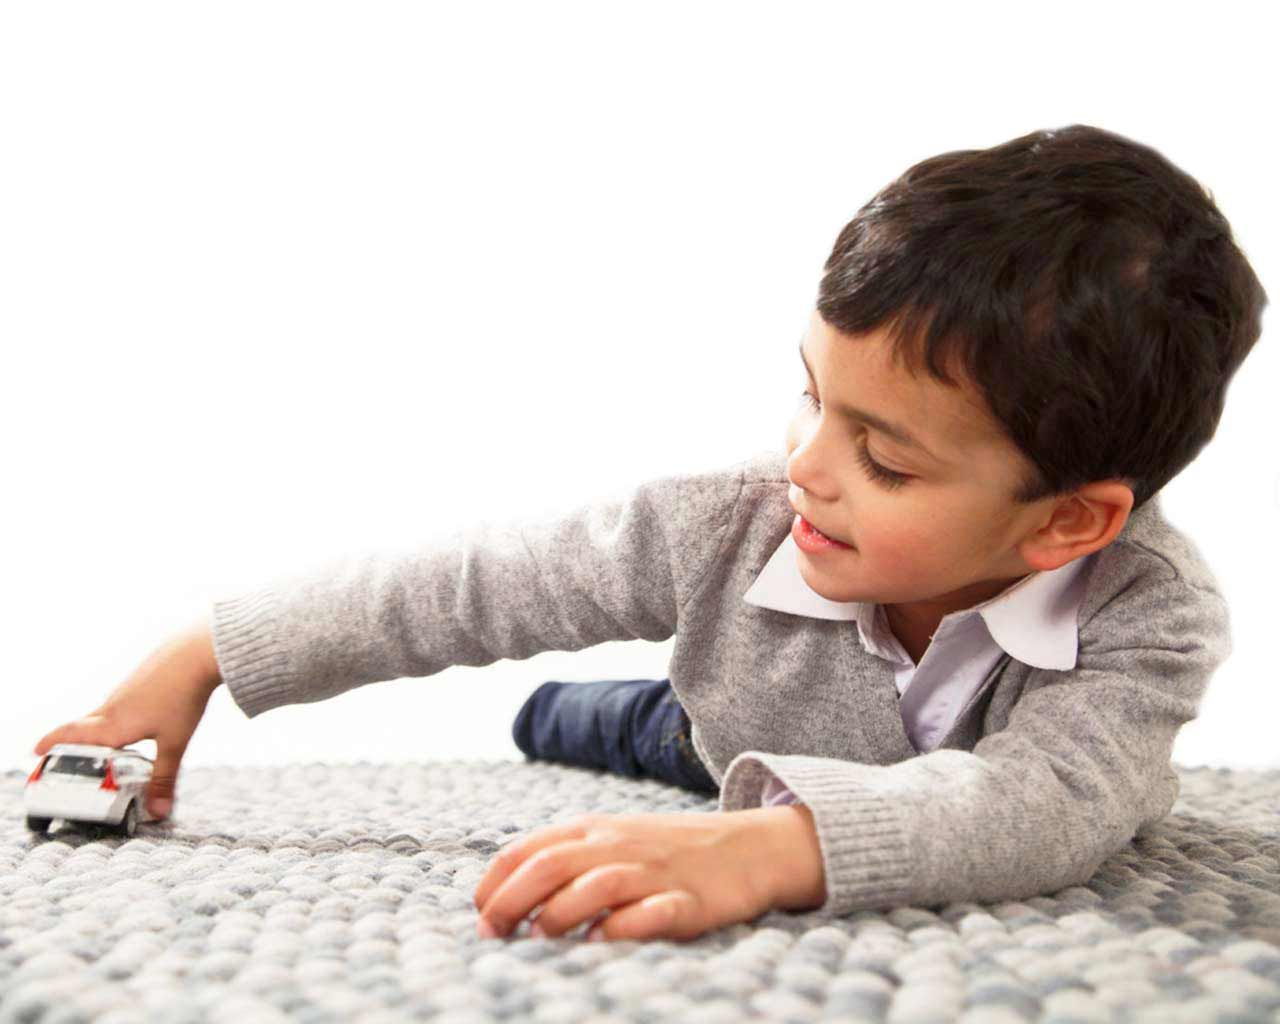 boy play with car on rug soft carpet